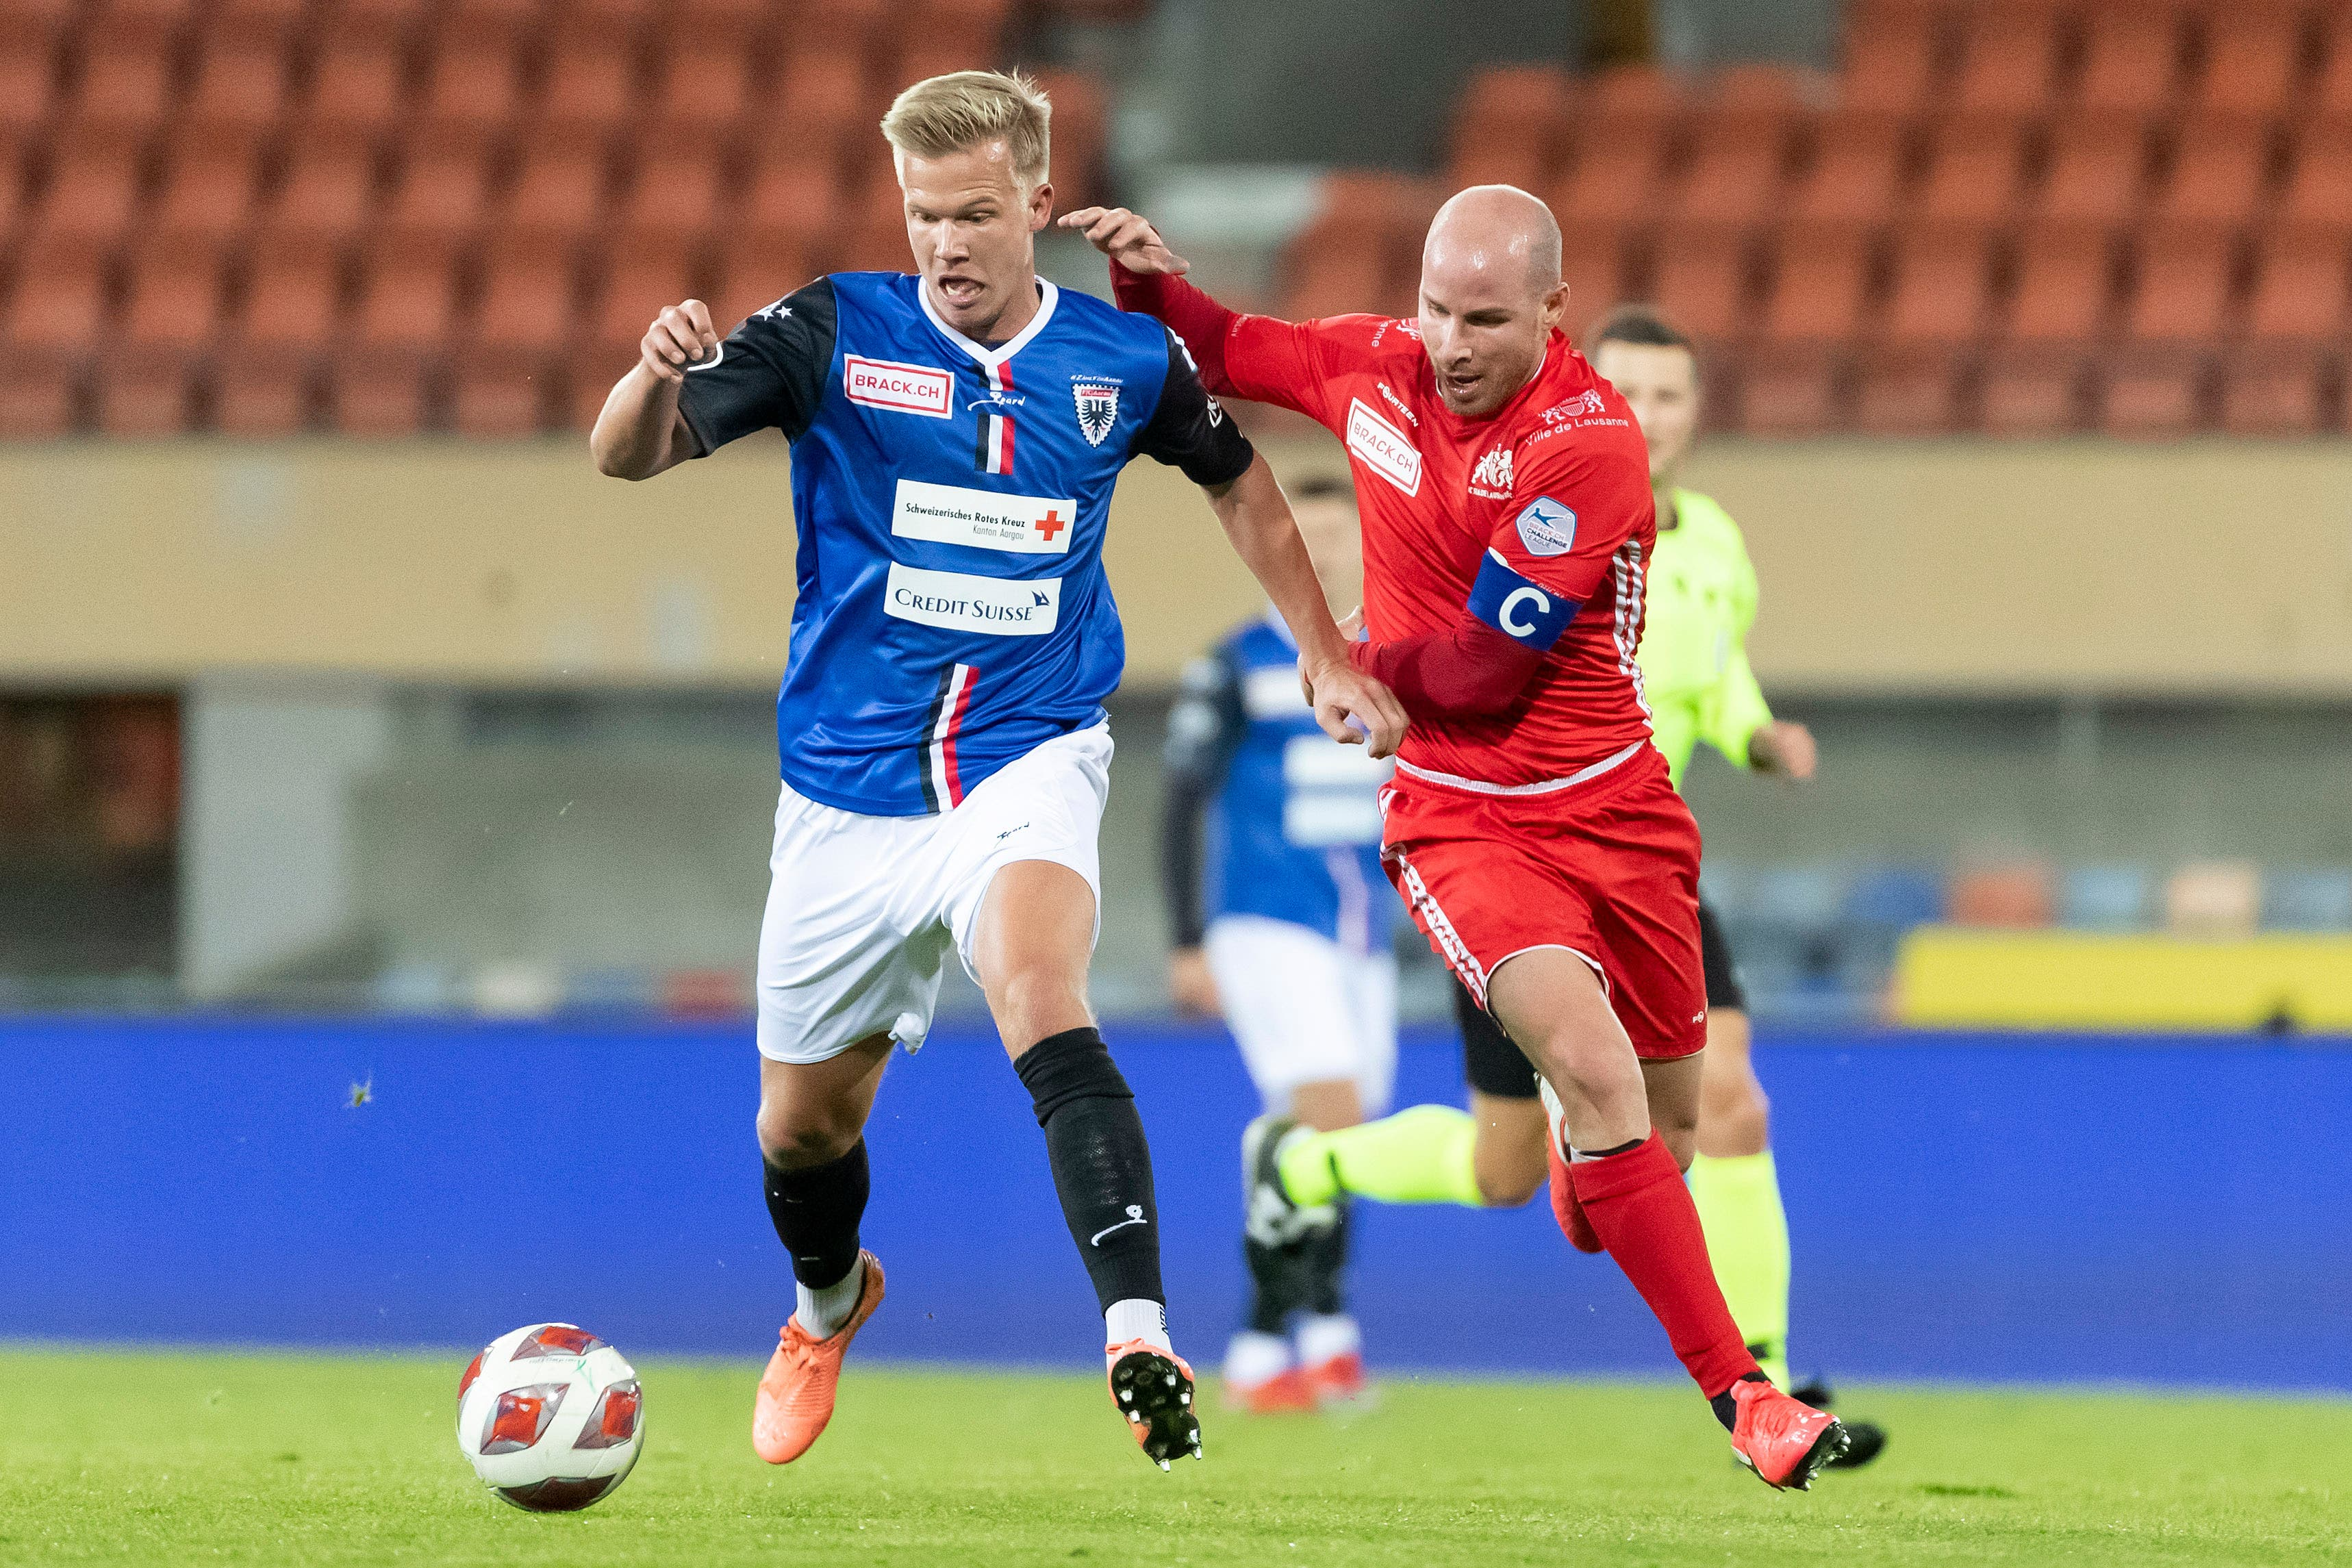 Fussball, Challenge League: FC Stade Lausanne-Ouchy - FC Aarau (16.10.20)